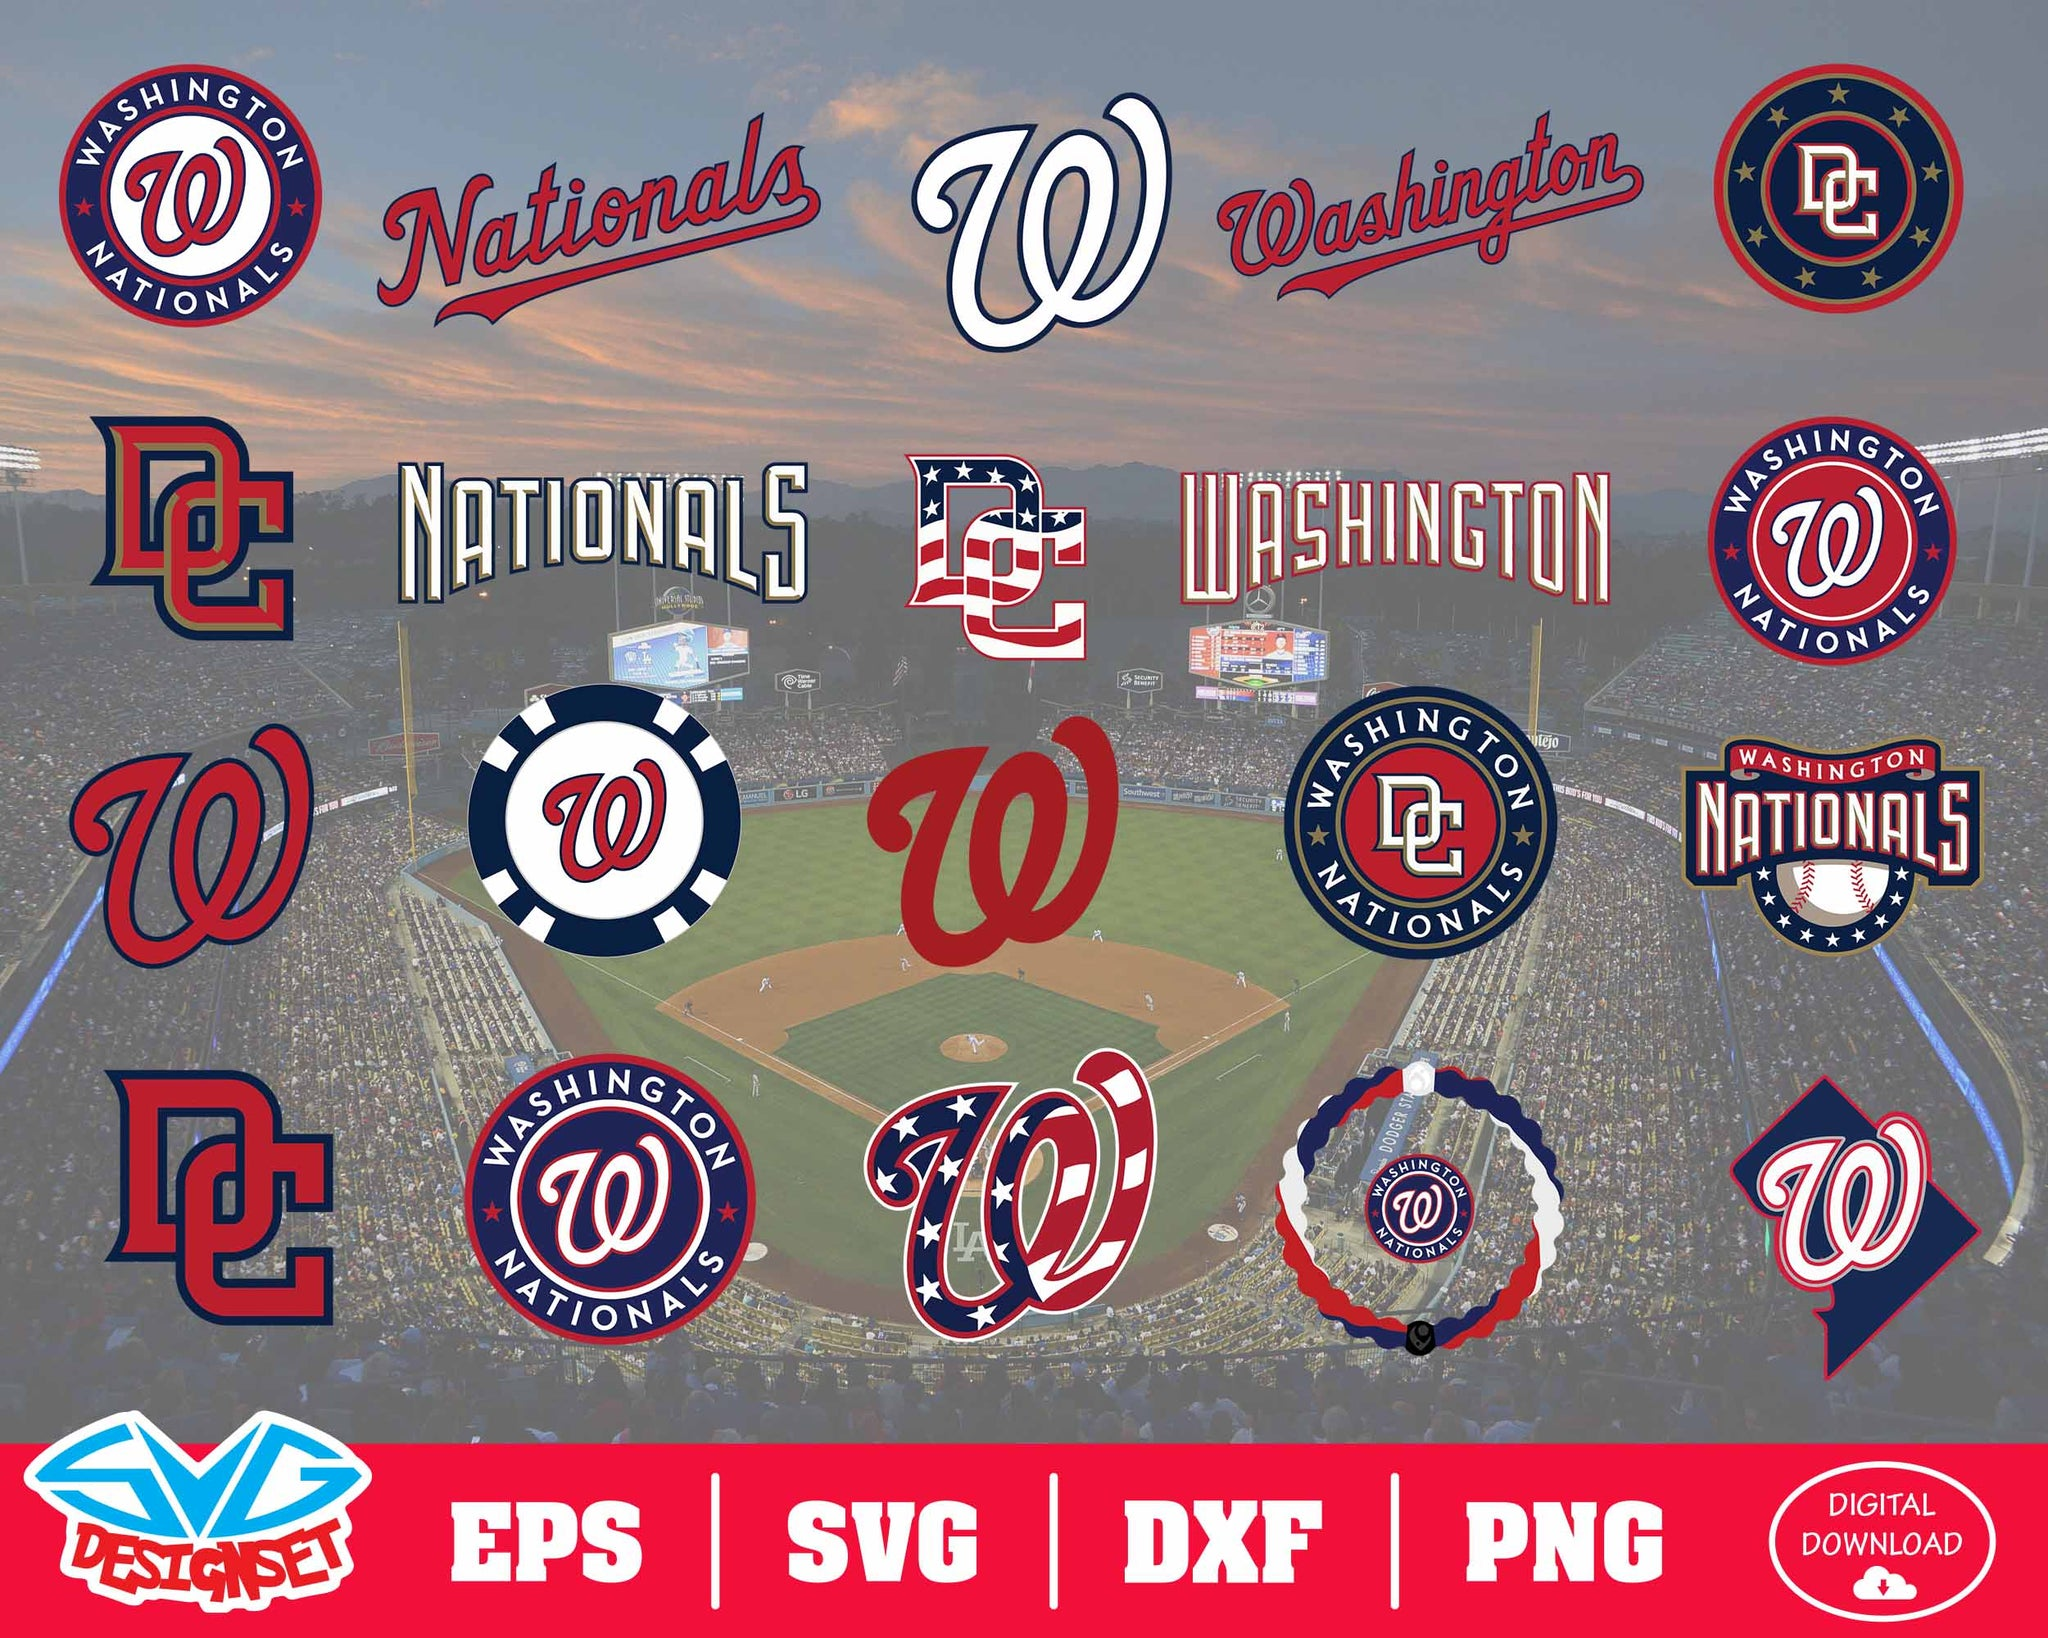 Washington Nations Team Svg, Dxf, Eps, Png, Clipart, Silhouette and Cutfiles